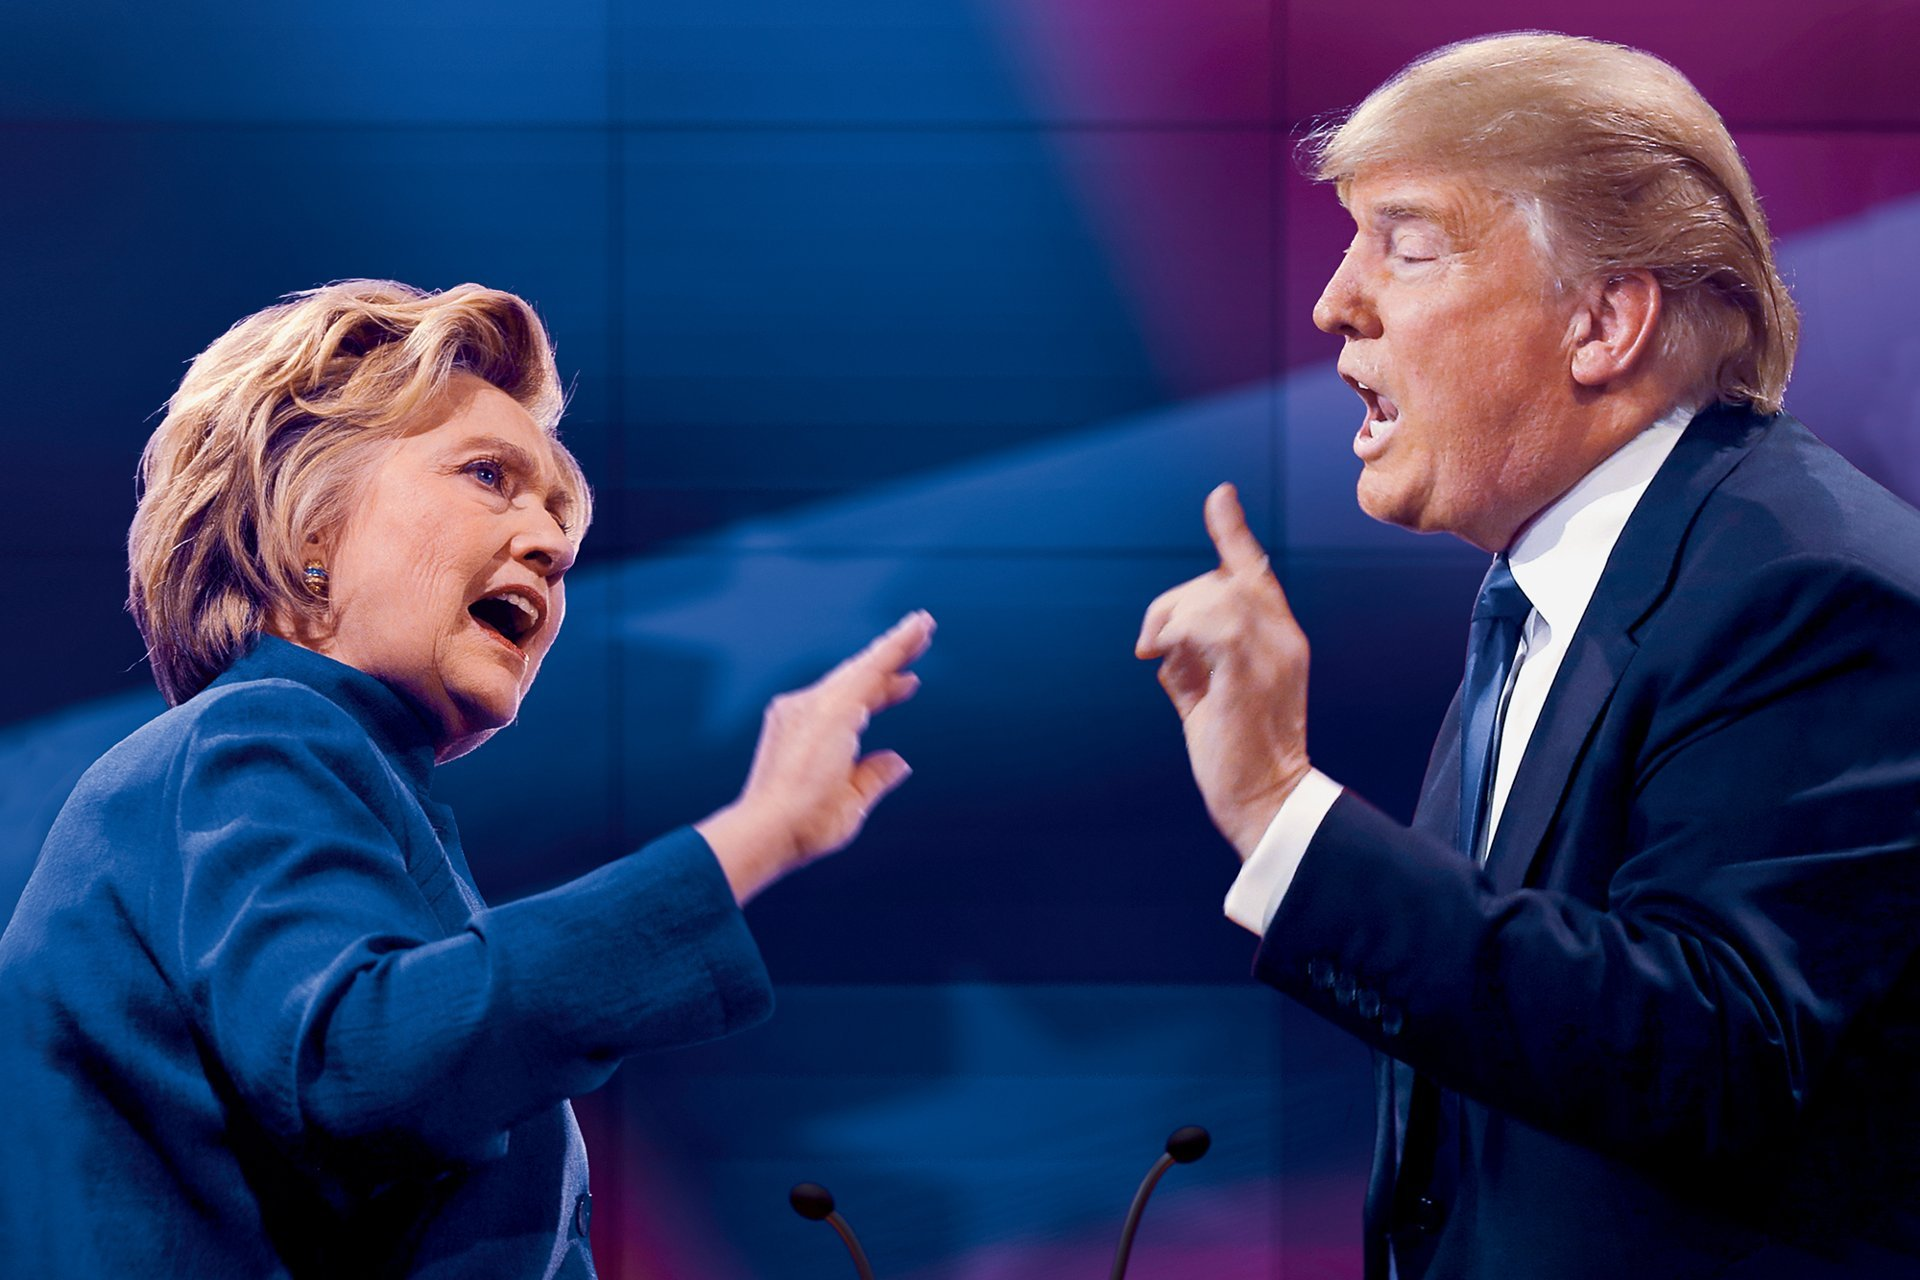 A Little Piece on the Election: The Greater of Two Evils